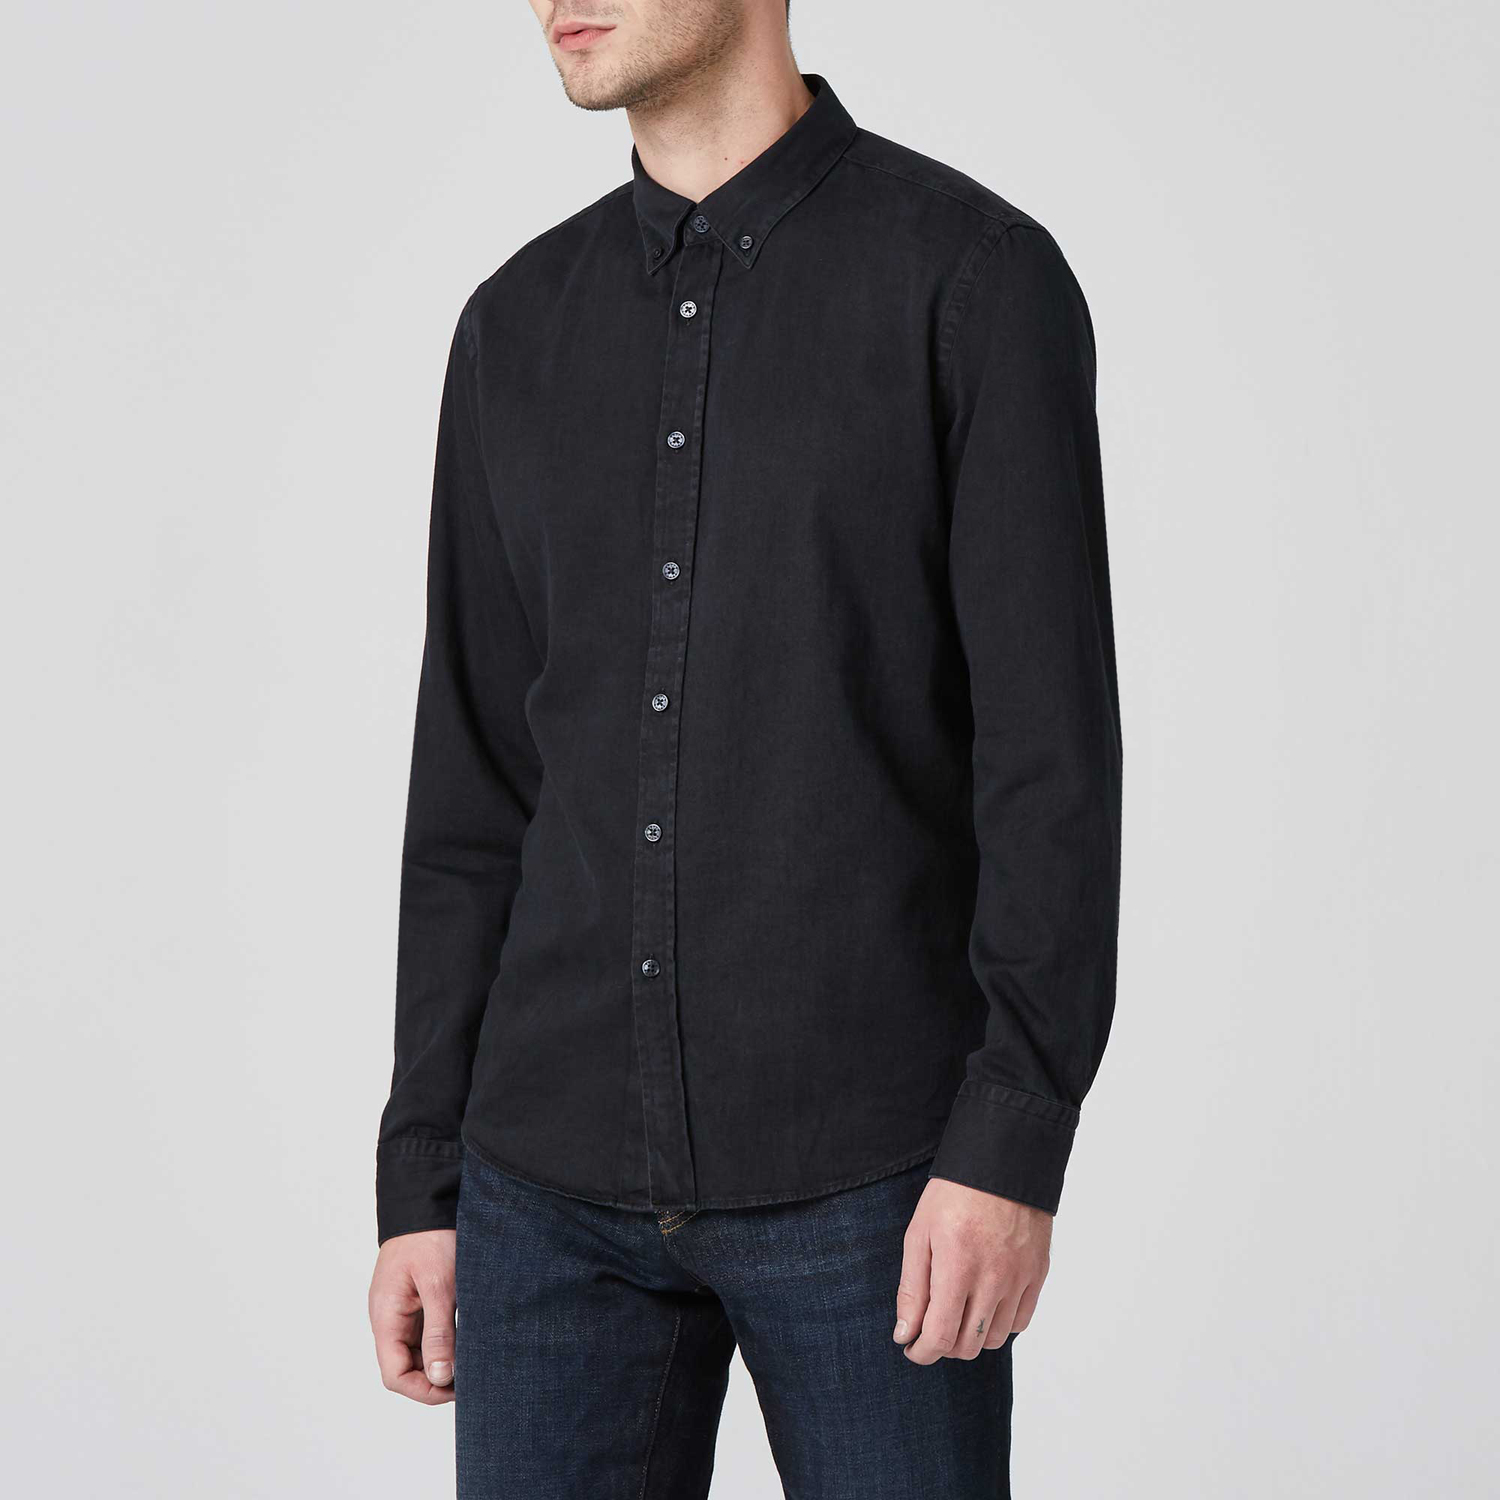 9ef8525fa962 Mens Classic Button Down Shirt In Black  79